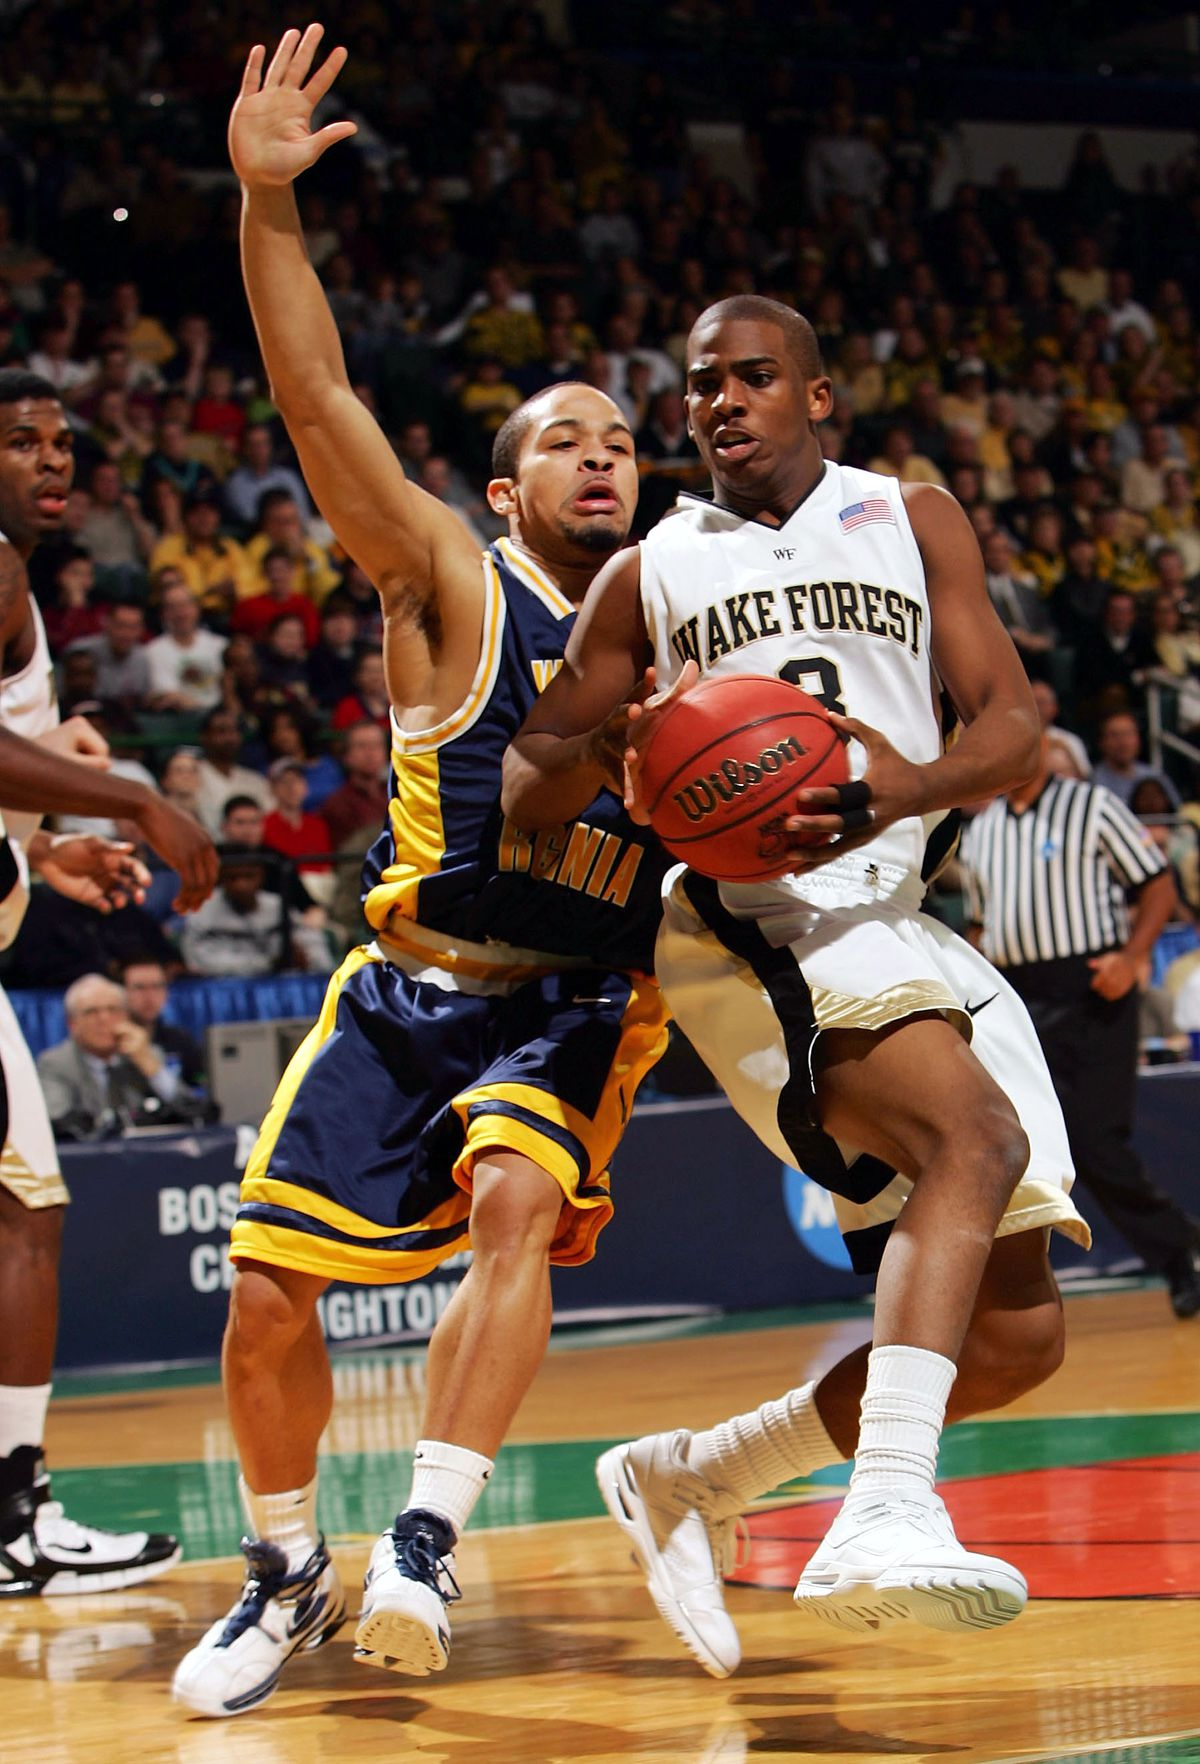 Wake Forest Demon Deacons v West Virginia Mountaineers